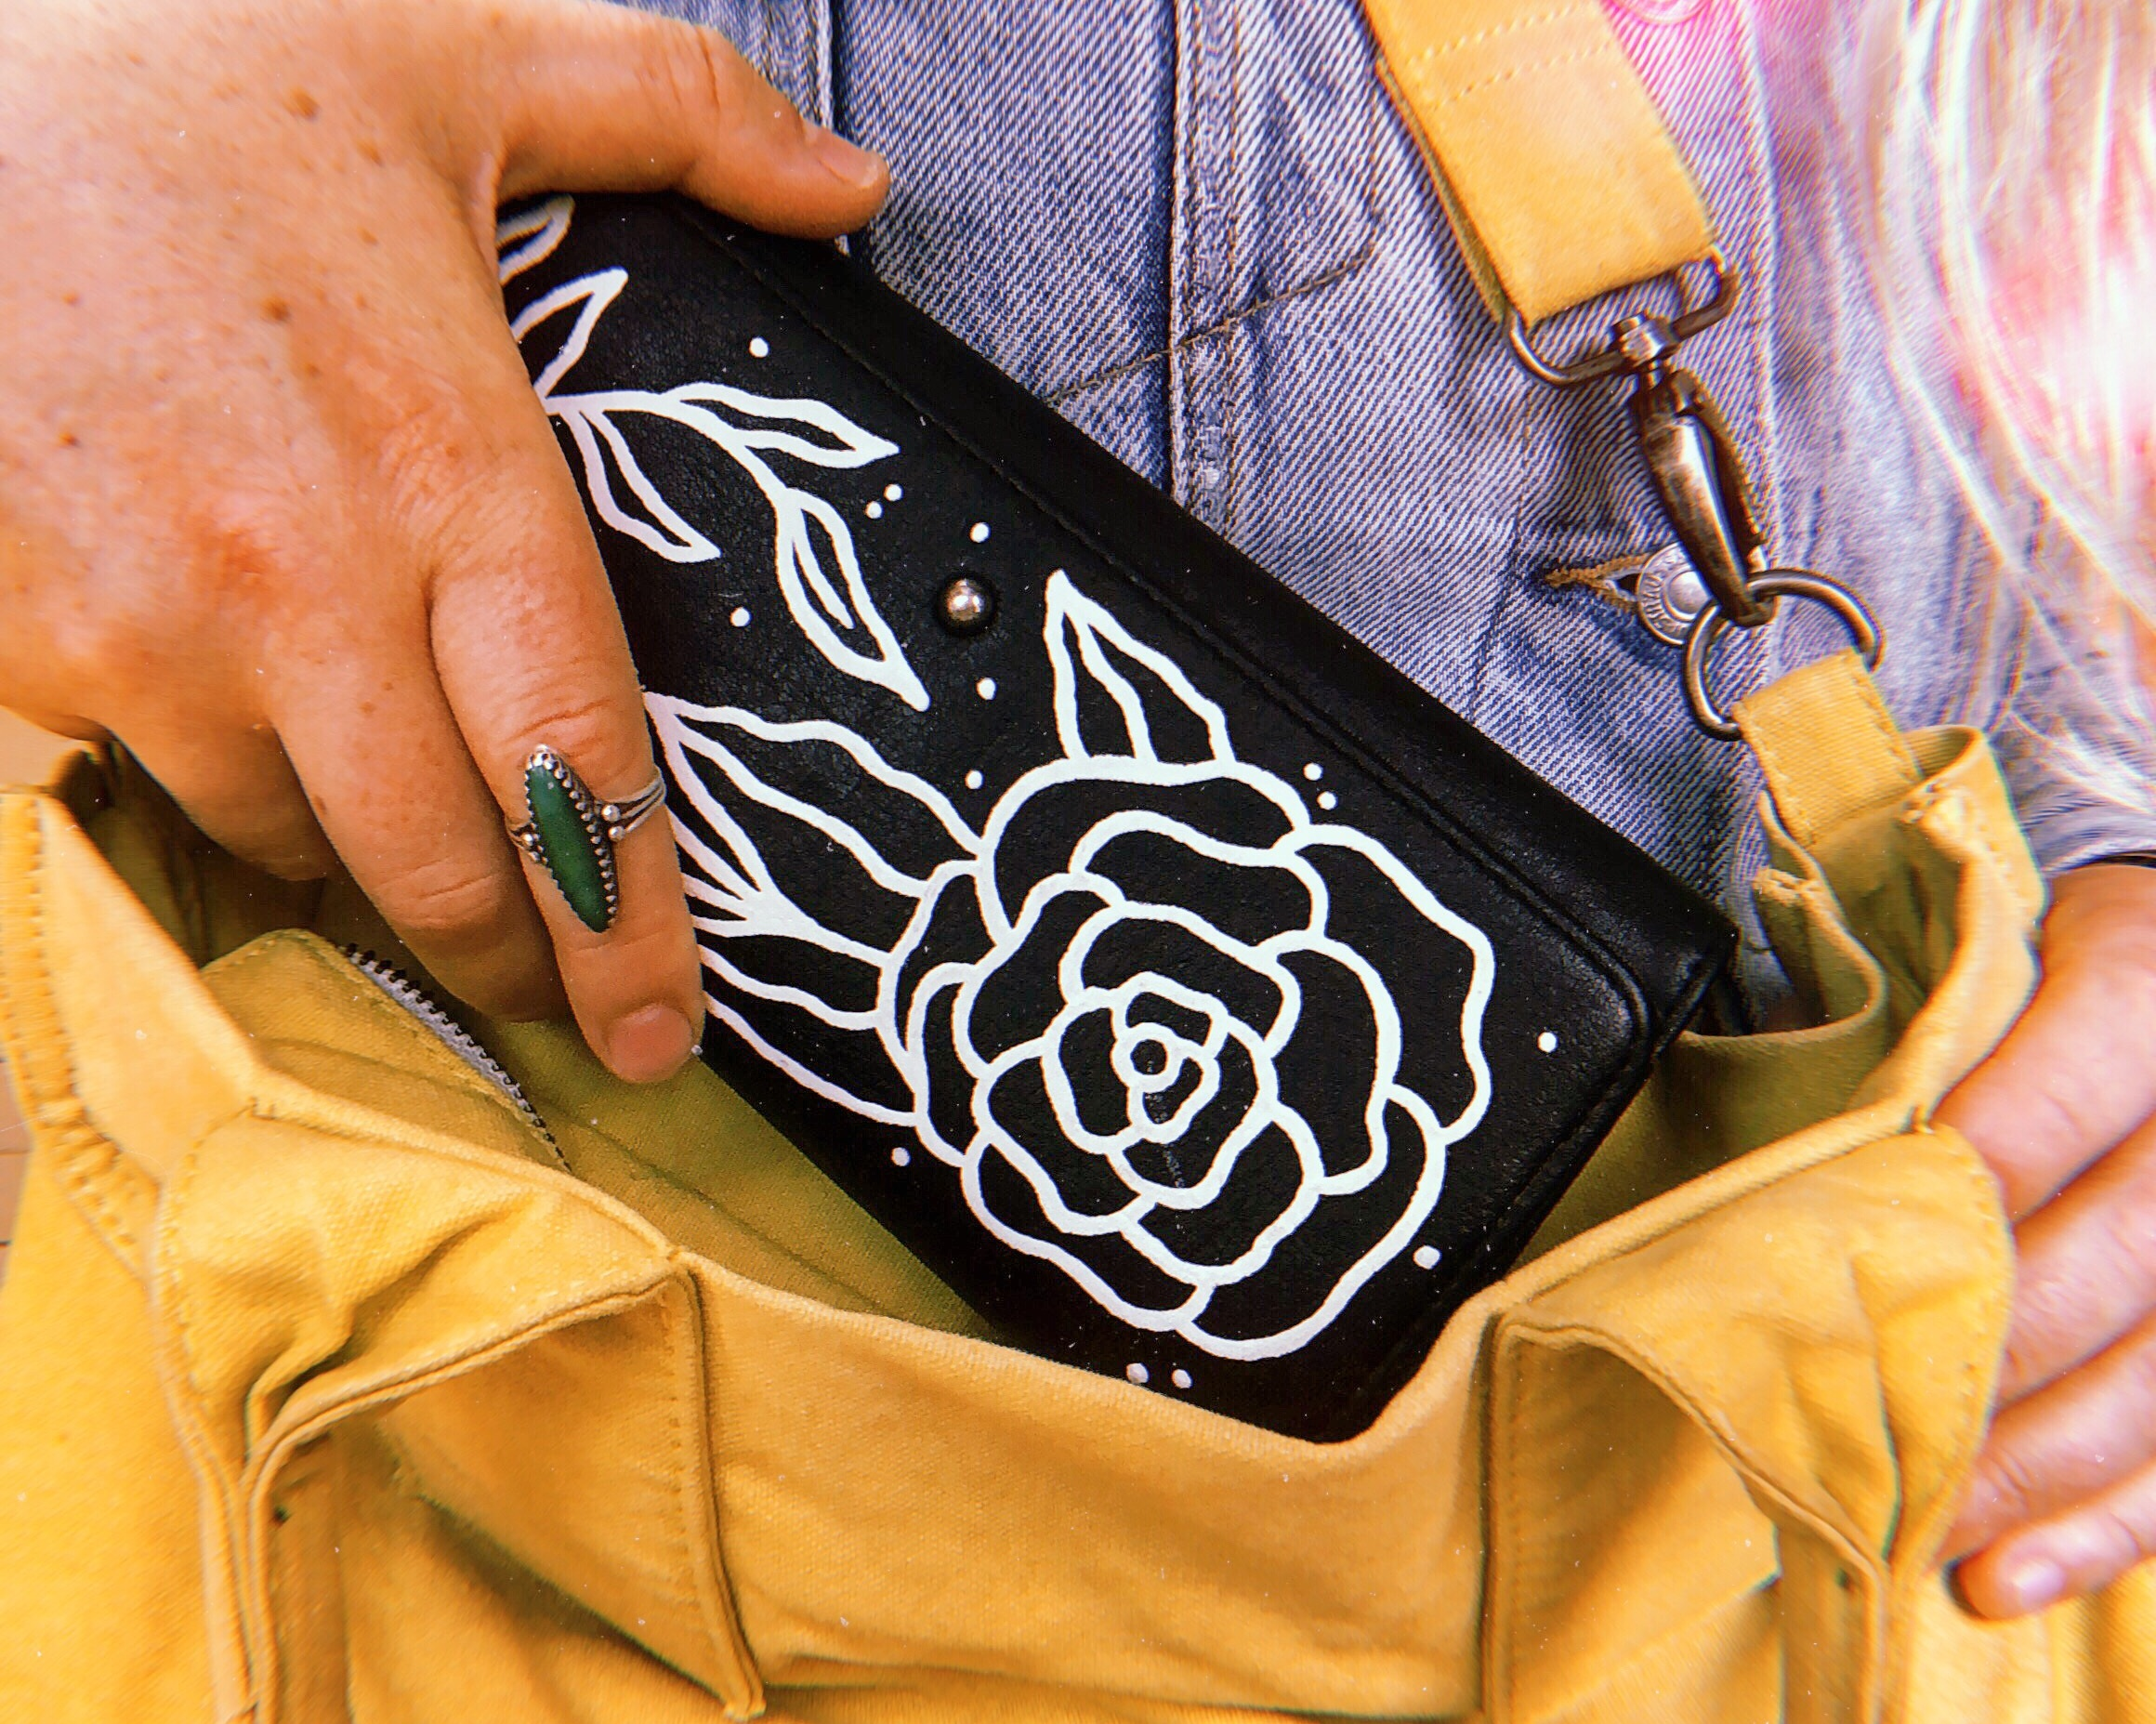 My brand name is Moral Laurel - Moral Laurel was born out of the idea to create fun and honest work through illustration and design. This site is dedicated to both of my passions: hand-painted up-cycled goods and freelance graphic design. I'm based out of Seattle WA, and my hope is to have a positive impact on my community.